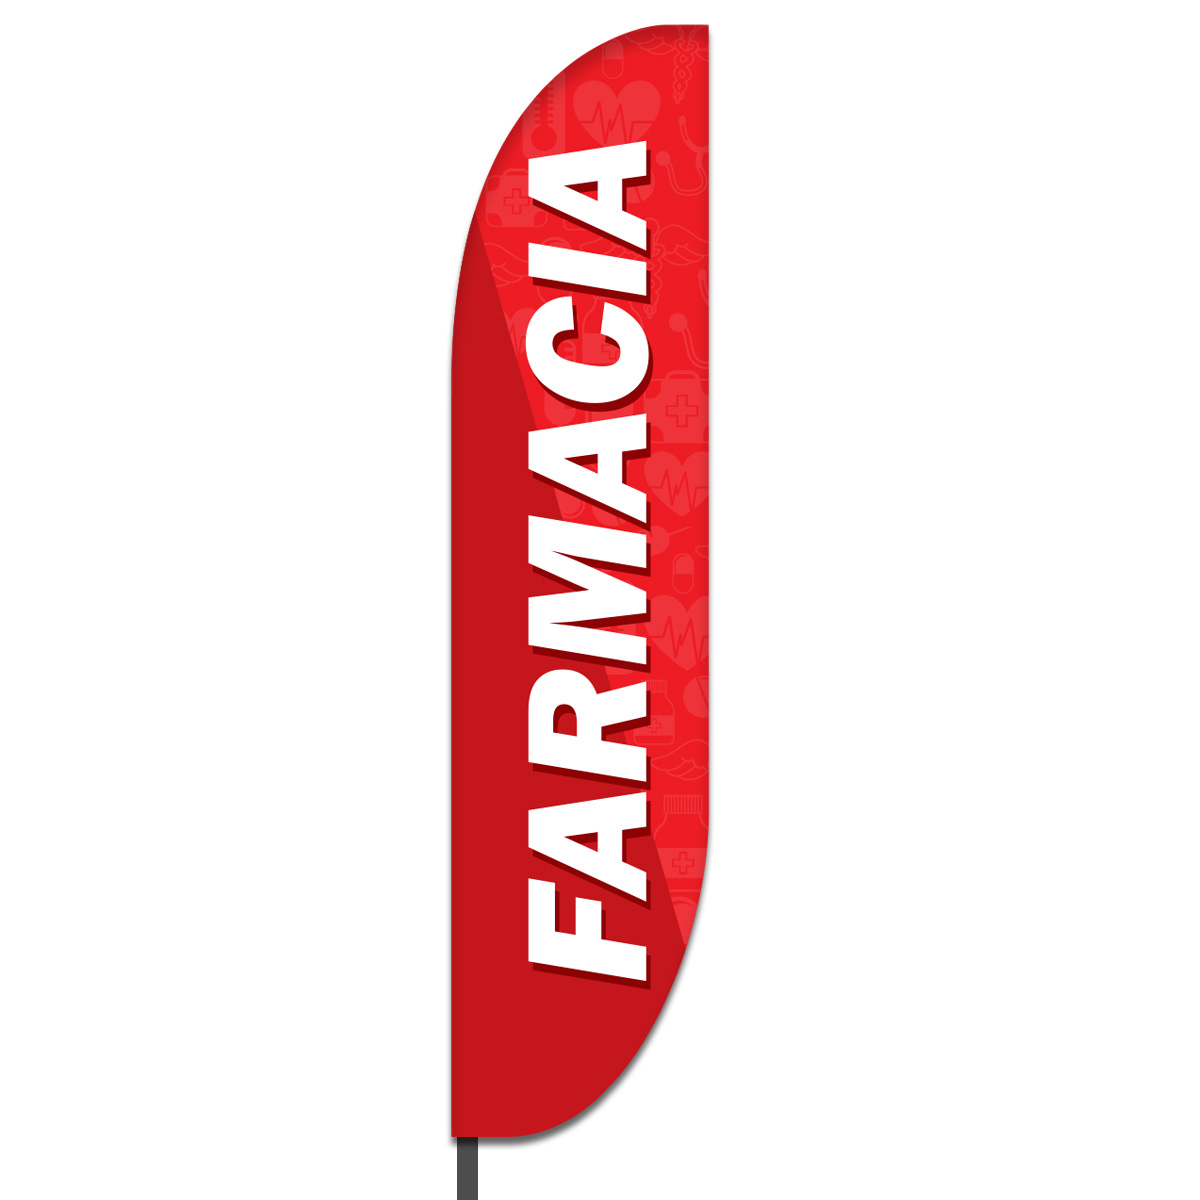 Spanish Pharmacy Flags Design 01